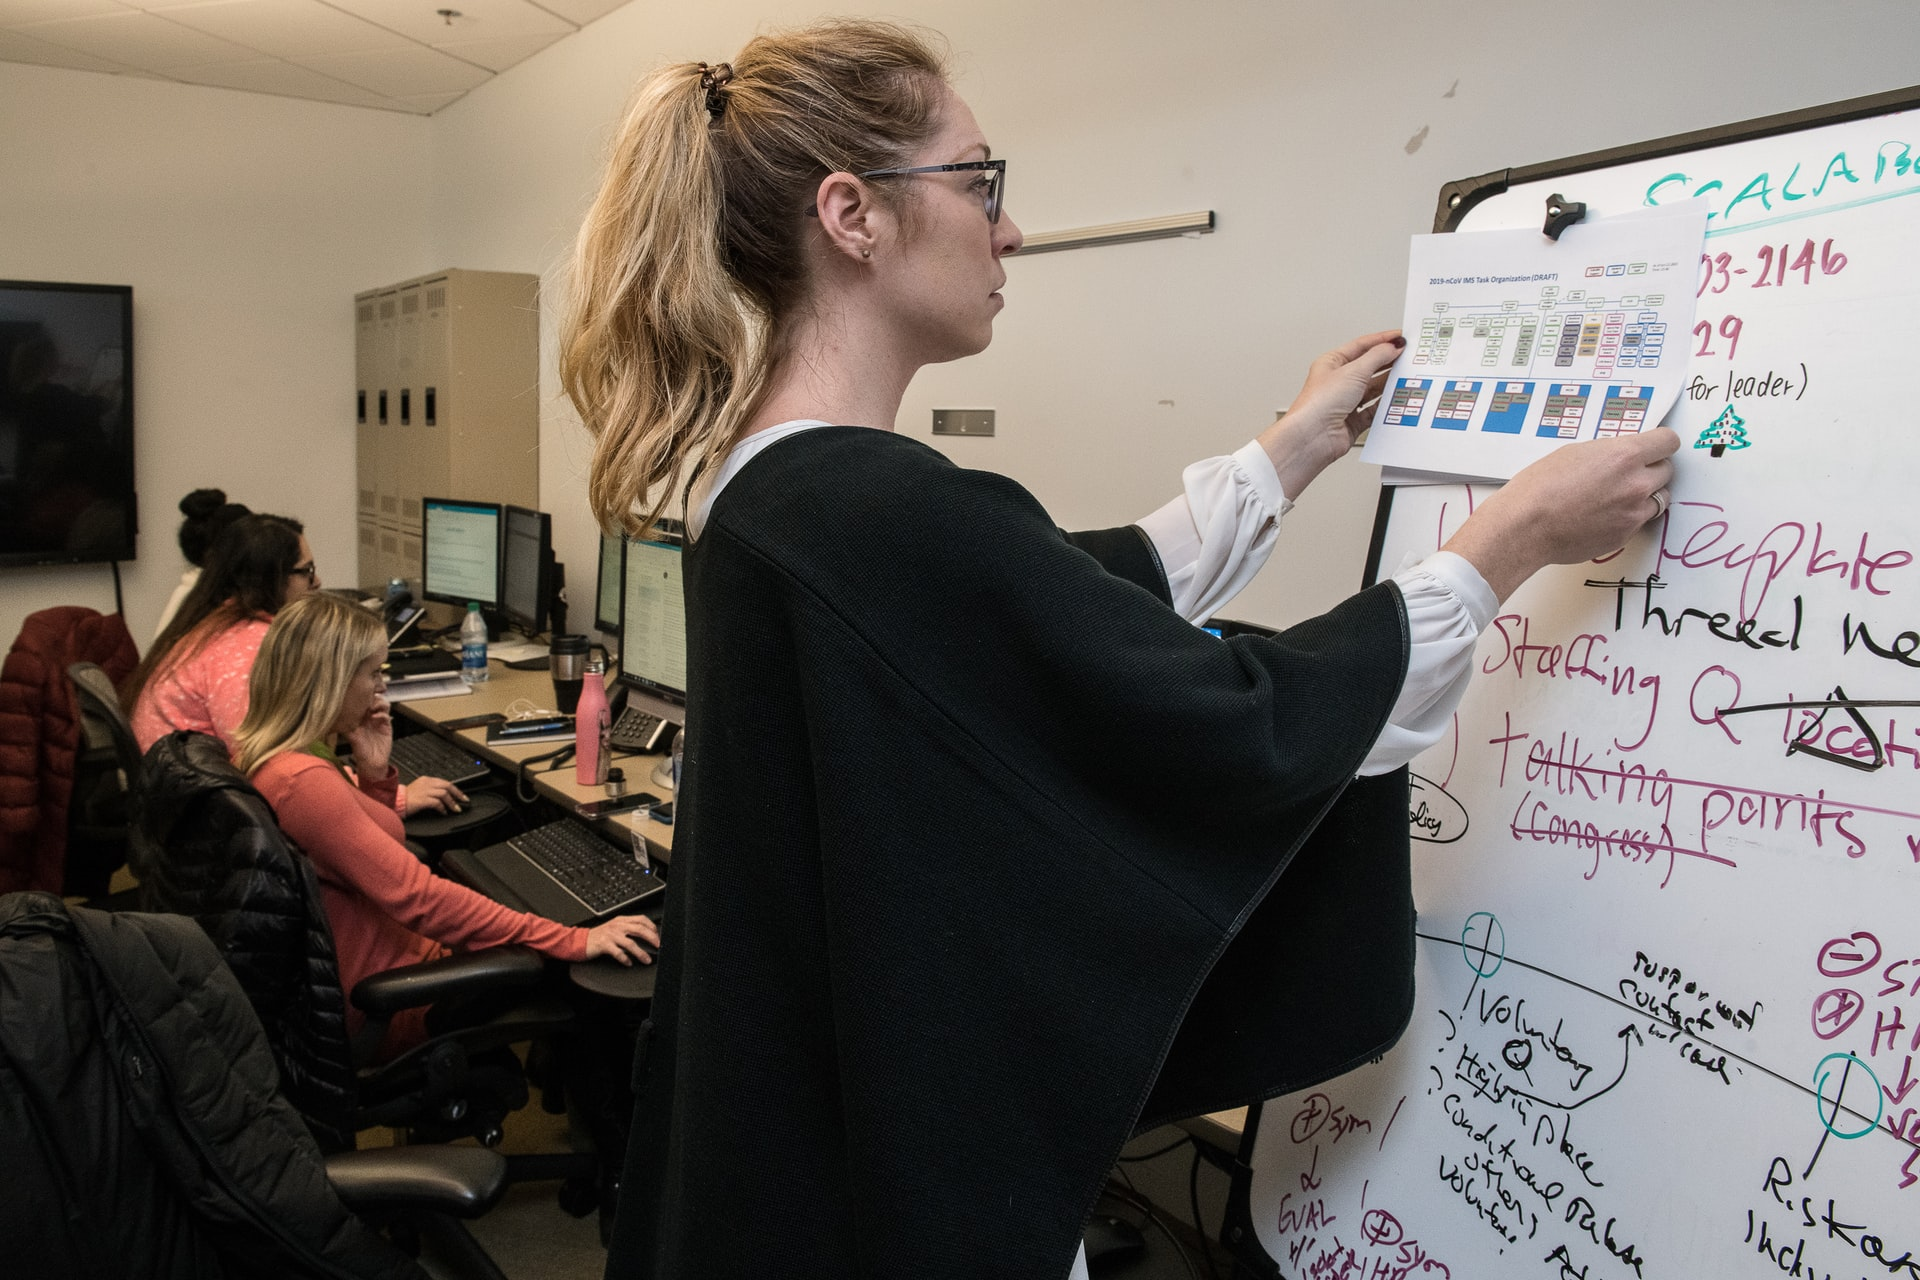 A woman wearing a black shirt posts a graph on a whiteboard.